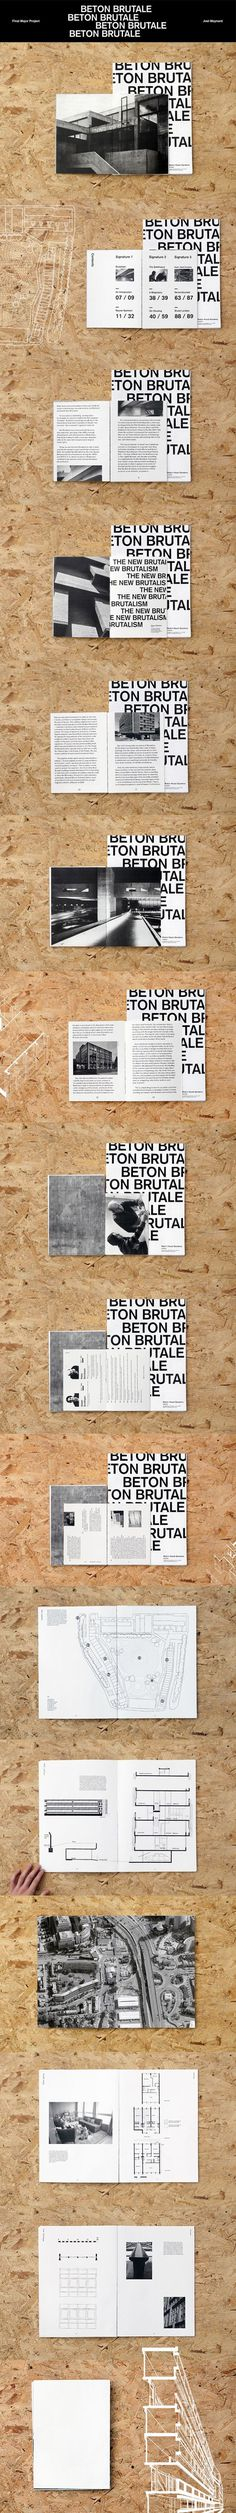 Beton Brutal | Brutalism Book  #brutalism #architecture #layout #book #spreads #brutalist #thesmithsons #photography #minimal #graphicdesign